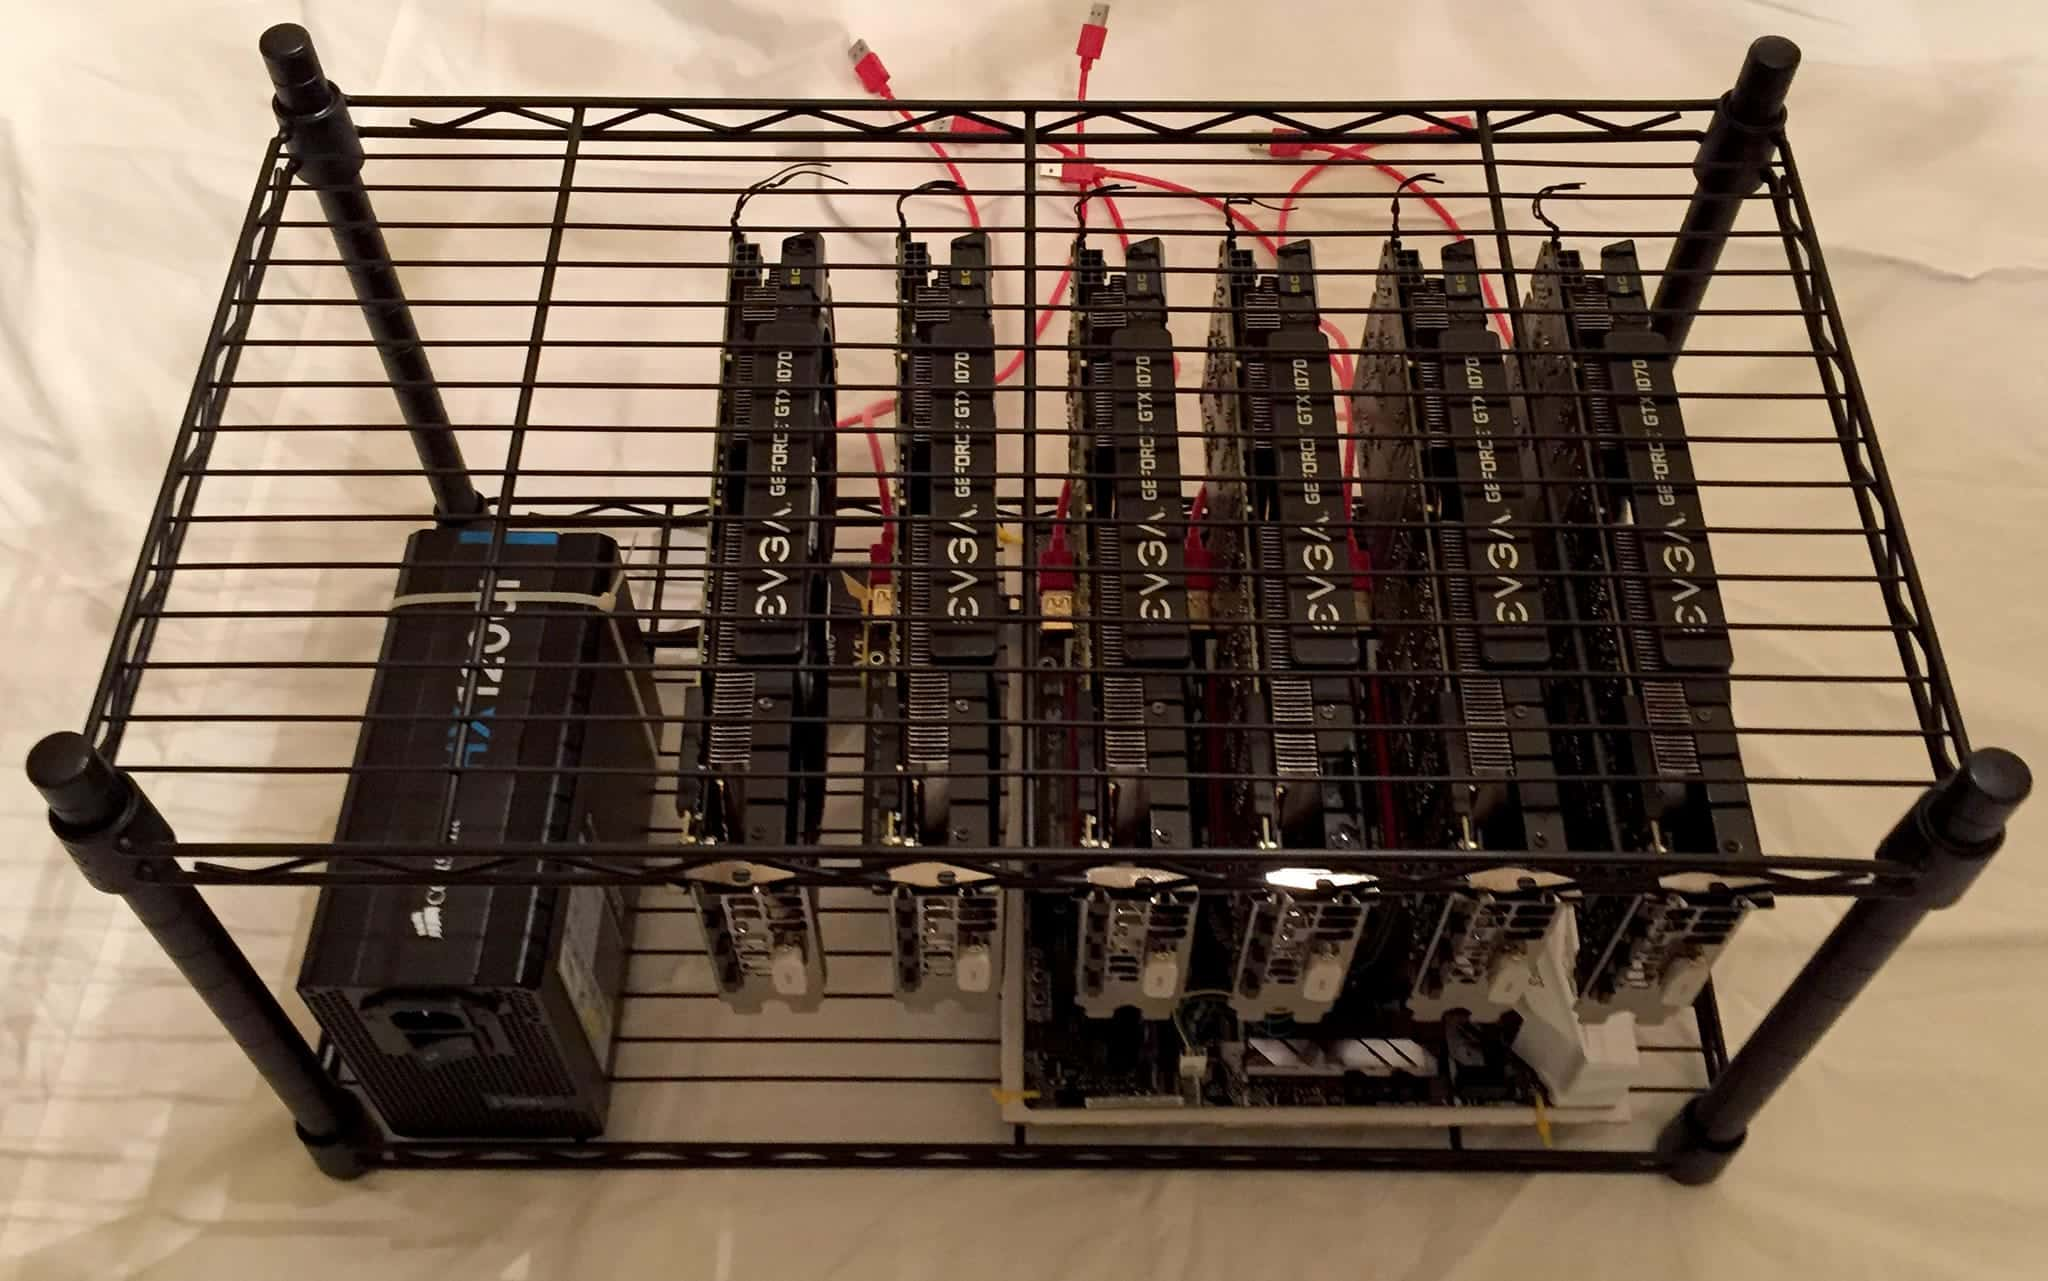 How to Build a 6 GPU Mining Rig - Part 1: Hardware [2019] • GPU0